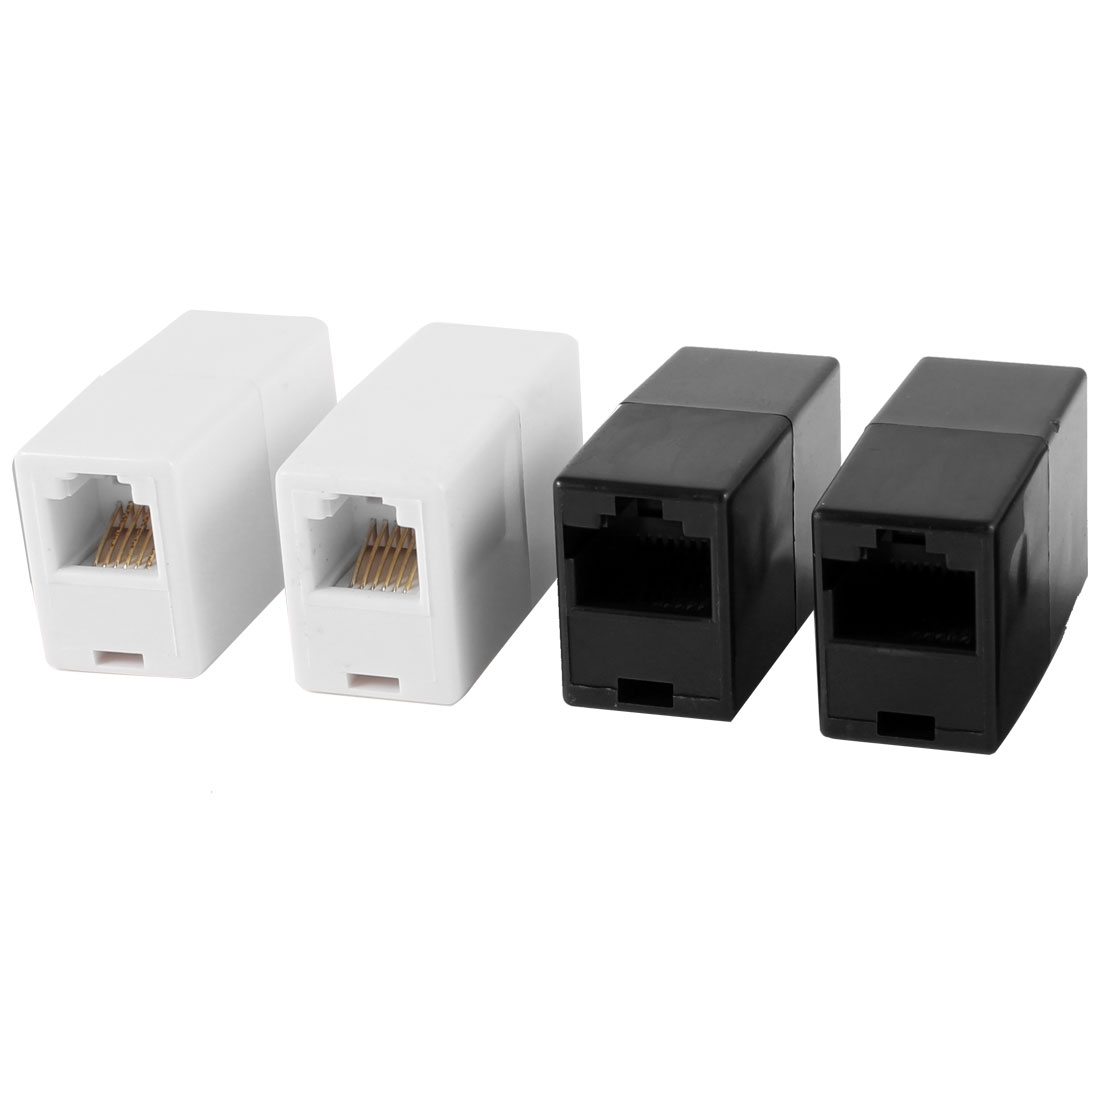 2 Pcs White RJ11 6P6C Telephone Cable Coupler + 2 Pcs Black RJ45 8P8C Ethernet Connector